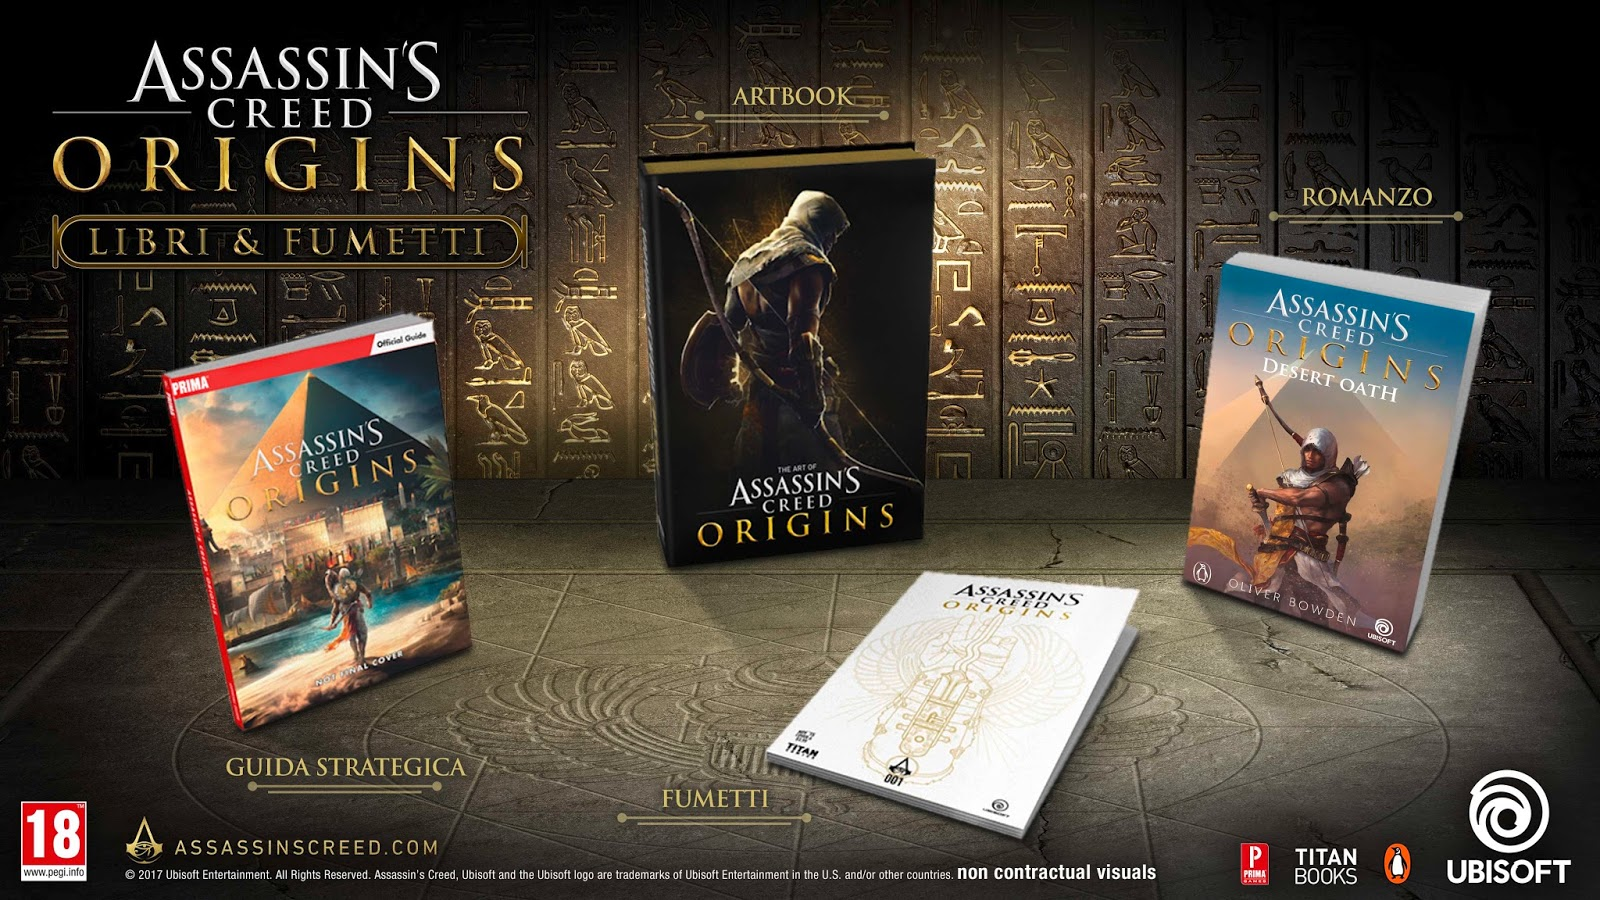 Assassin's Creed Origins tendrá cómics, novela, guía y libro de arte